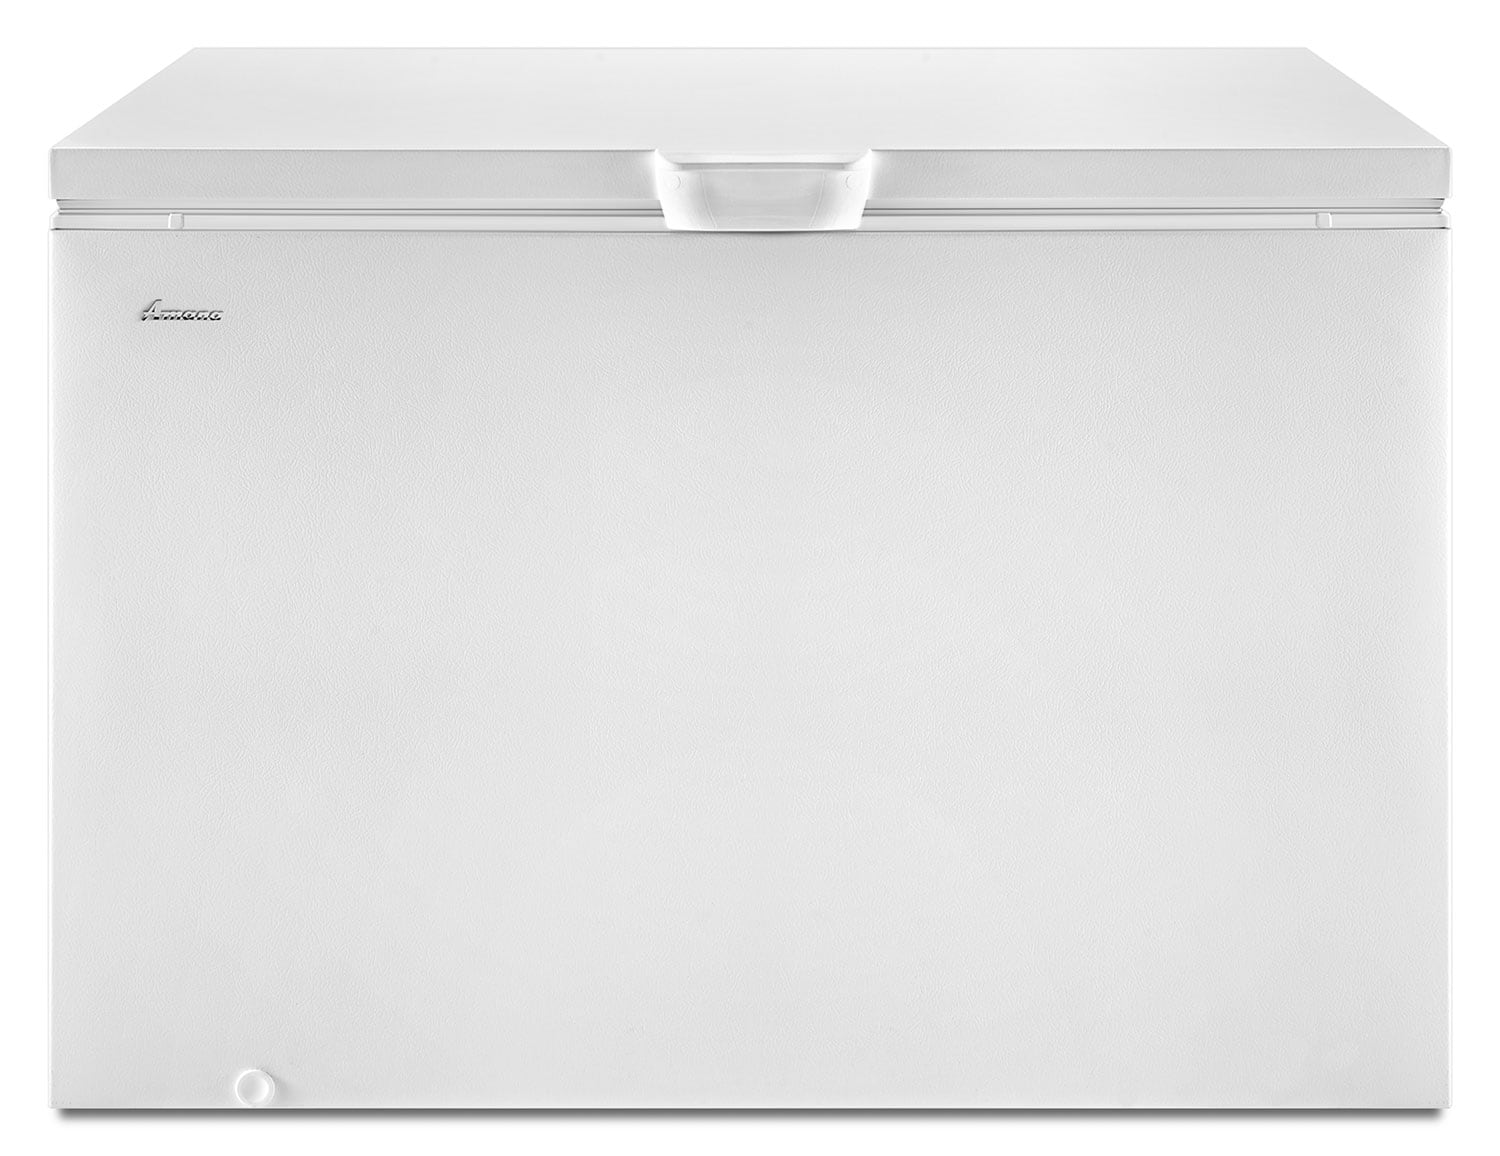 Refrigerators and Freezers - Amana White Chest Freezer (14.8 Cu. Ft.) - AZC31T15DW